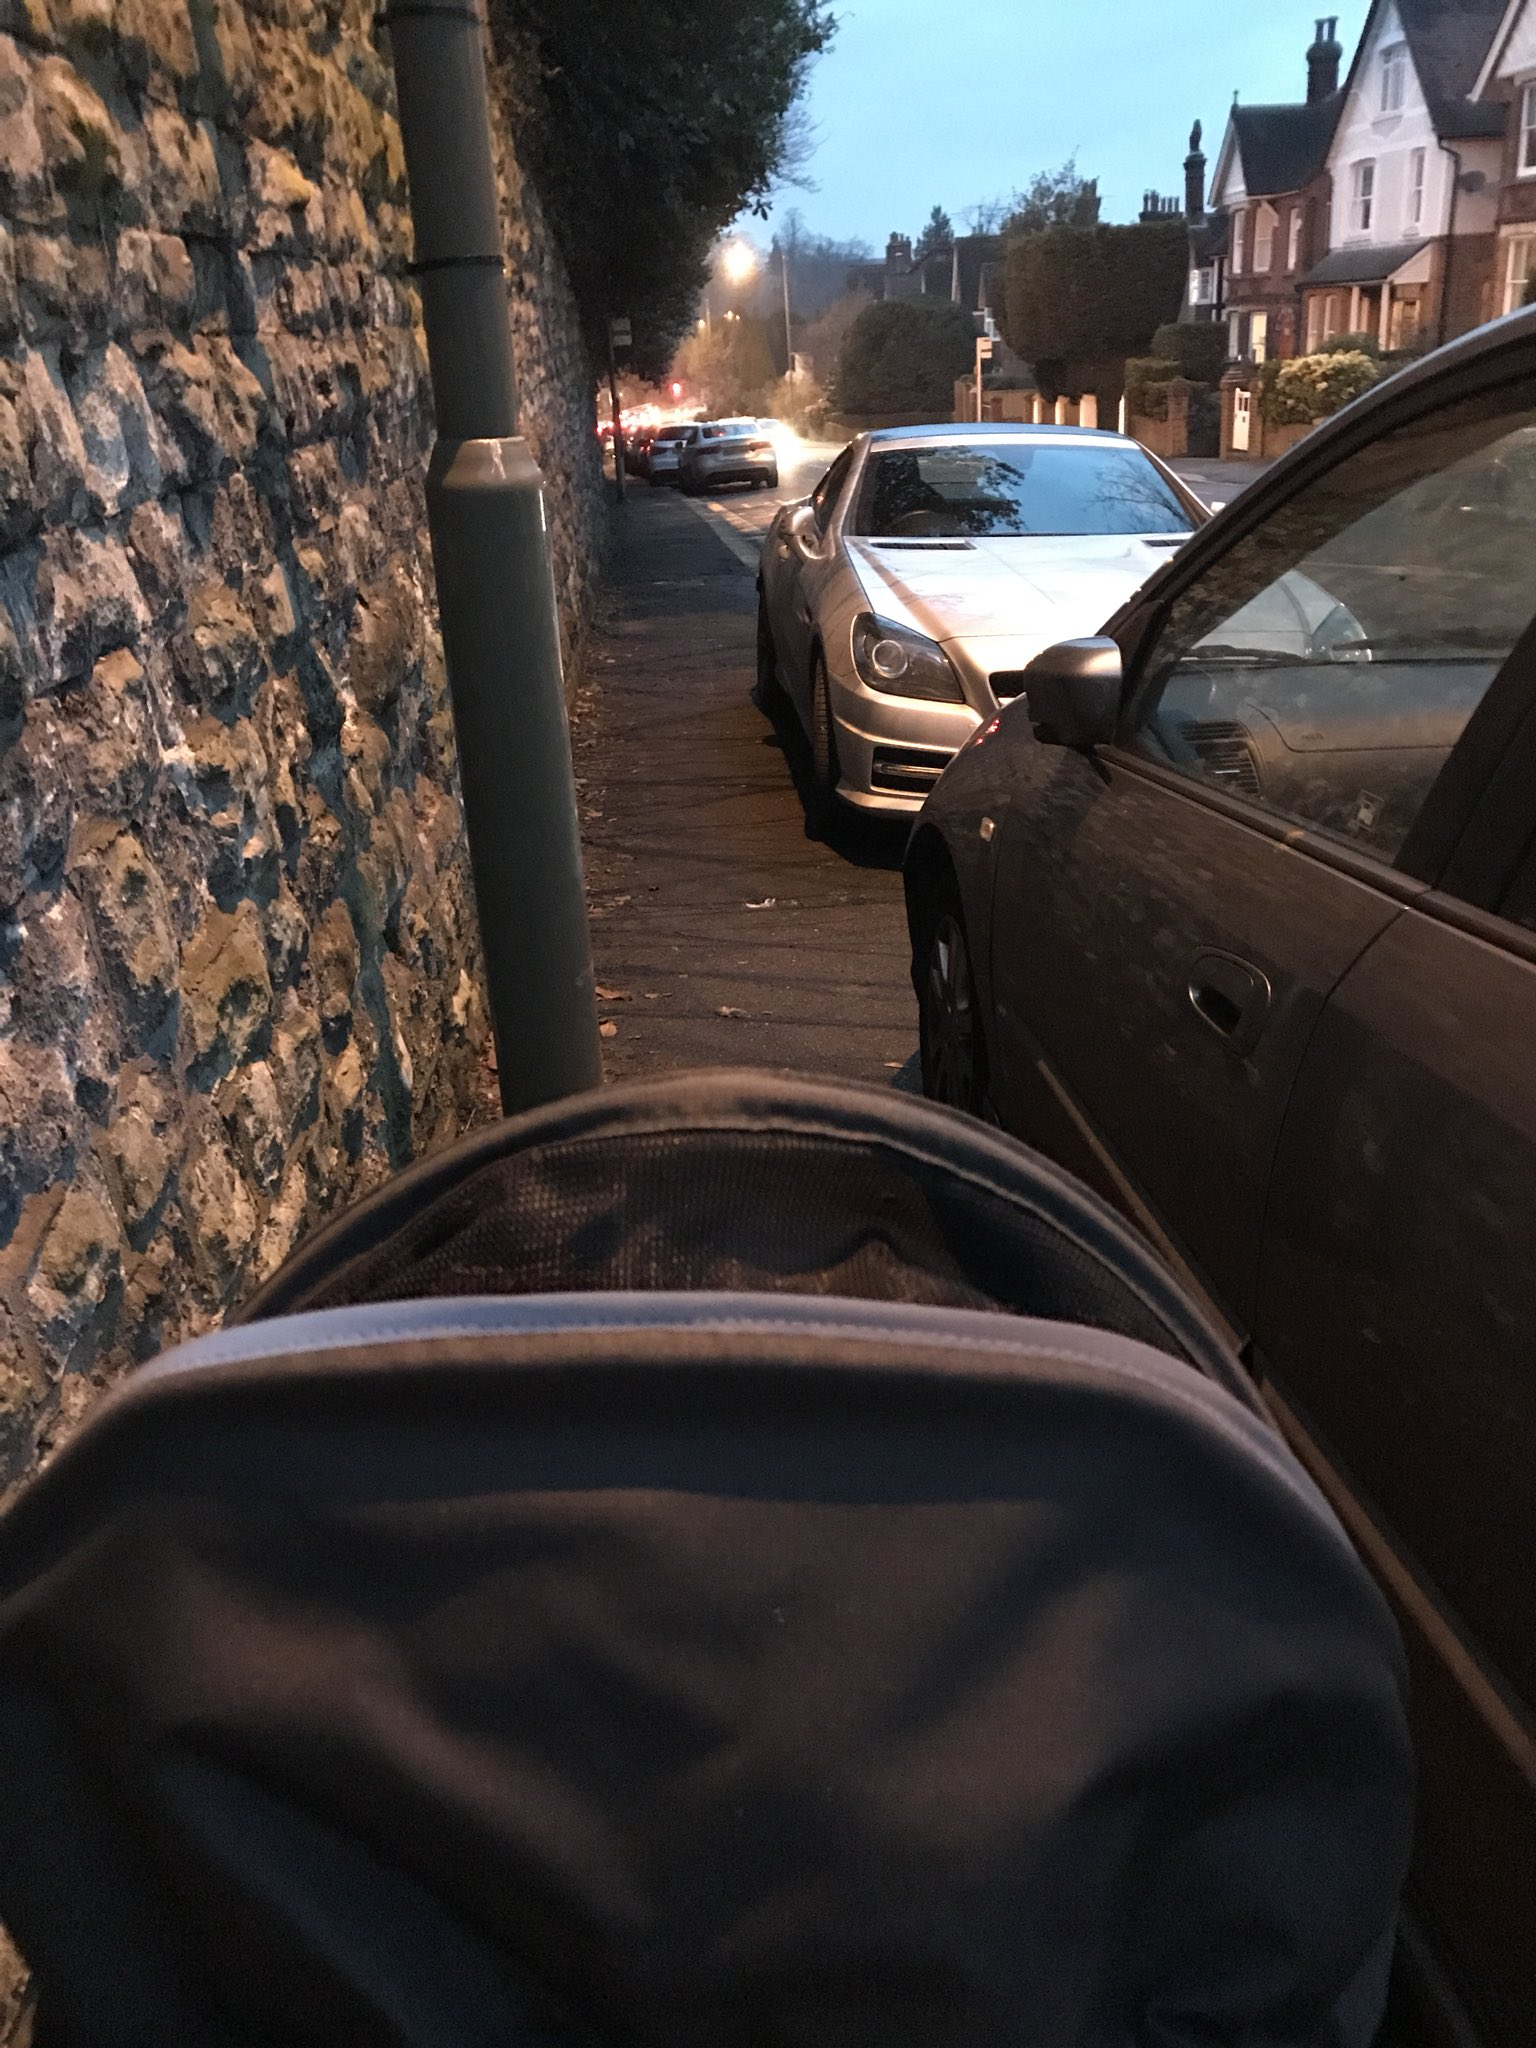 Cars can not only block cycle lanes but pavements at the same time